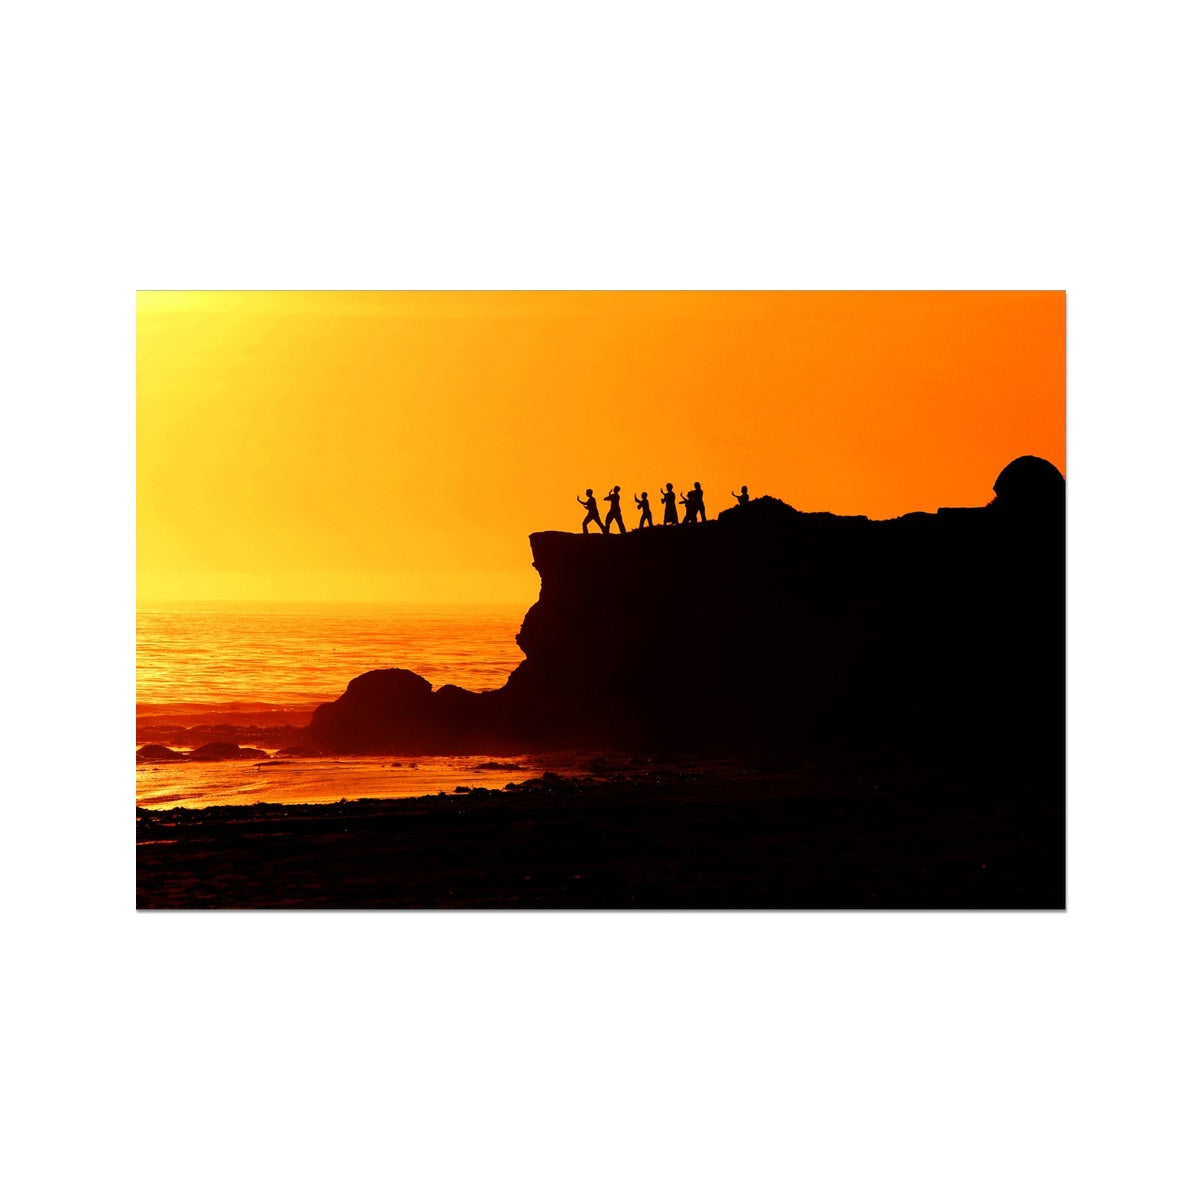 Tai Chi Sunset - California Photo Art Print